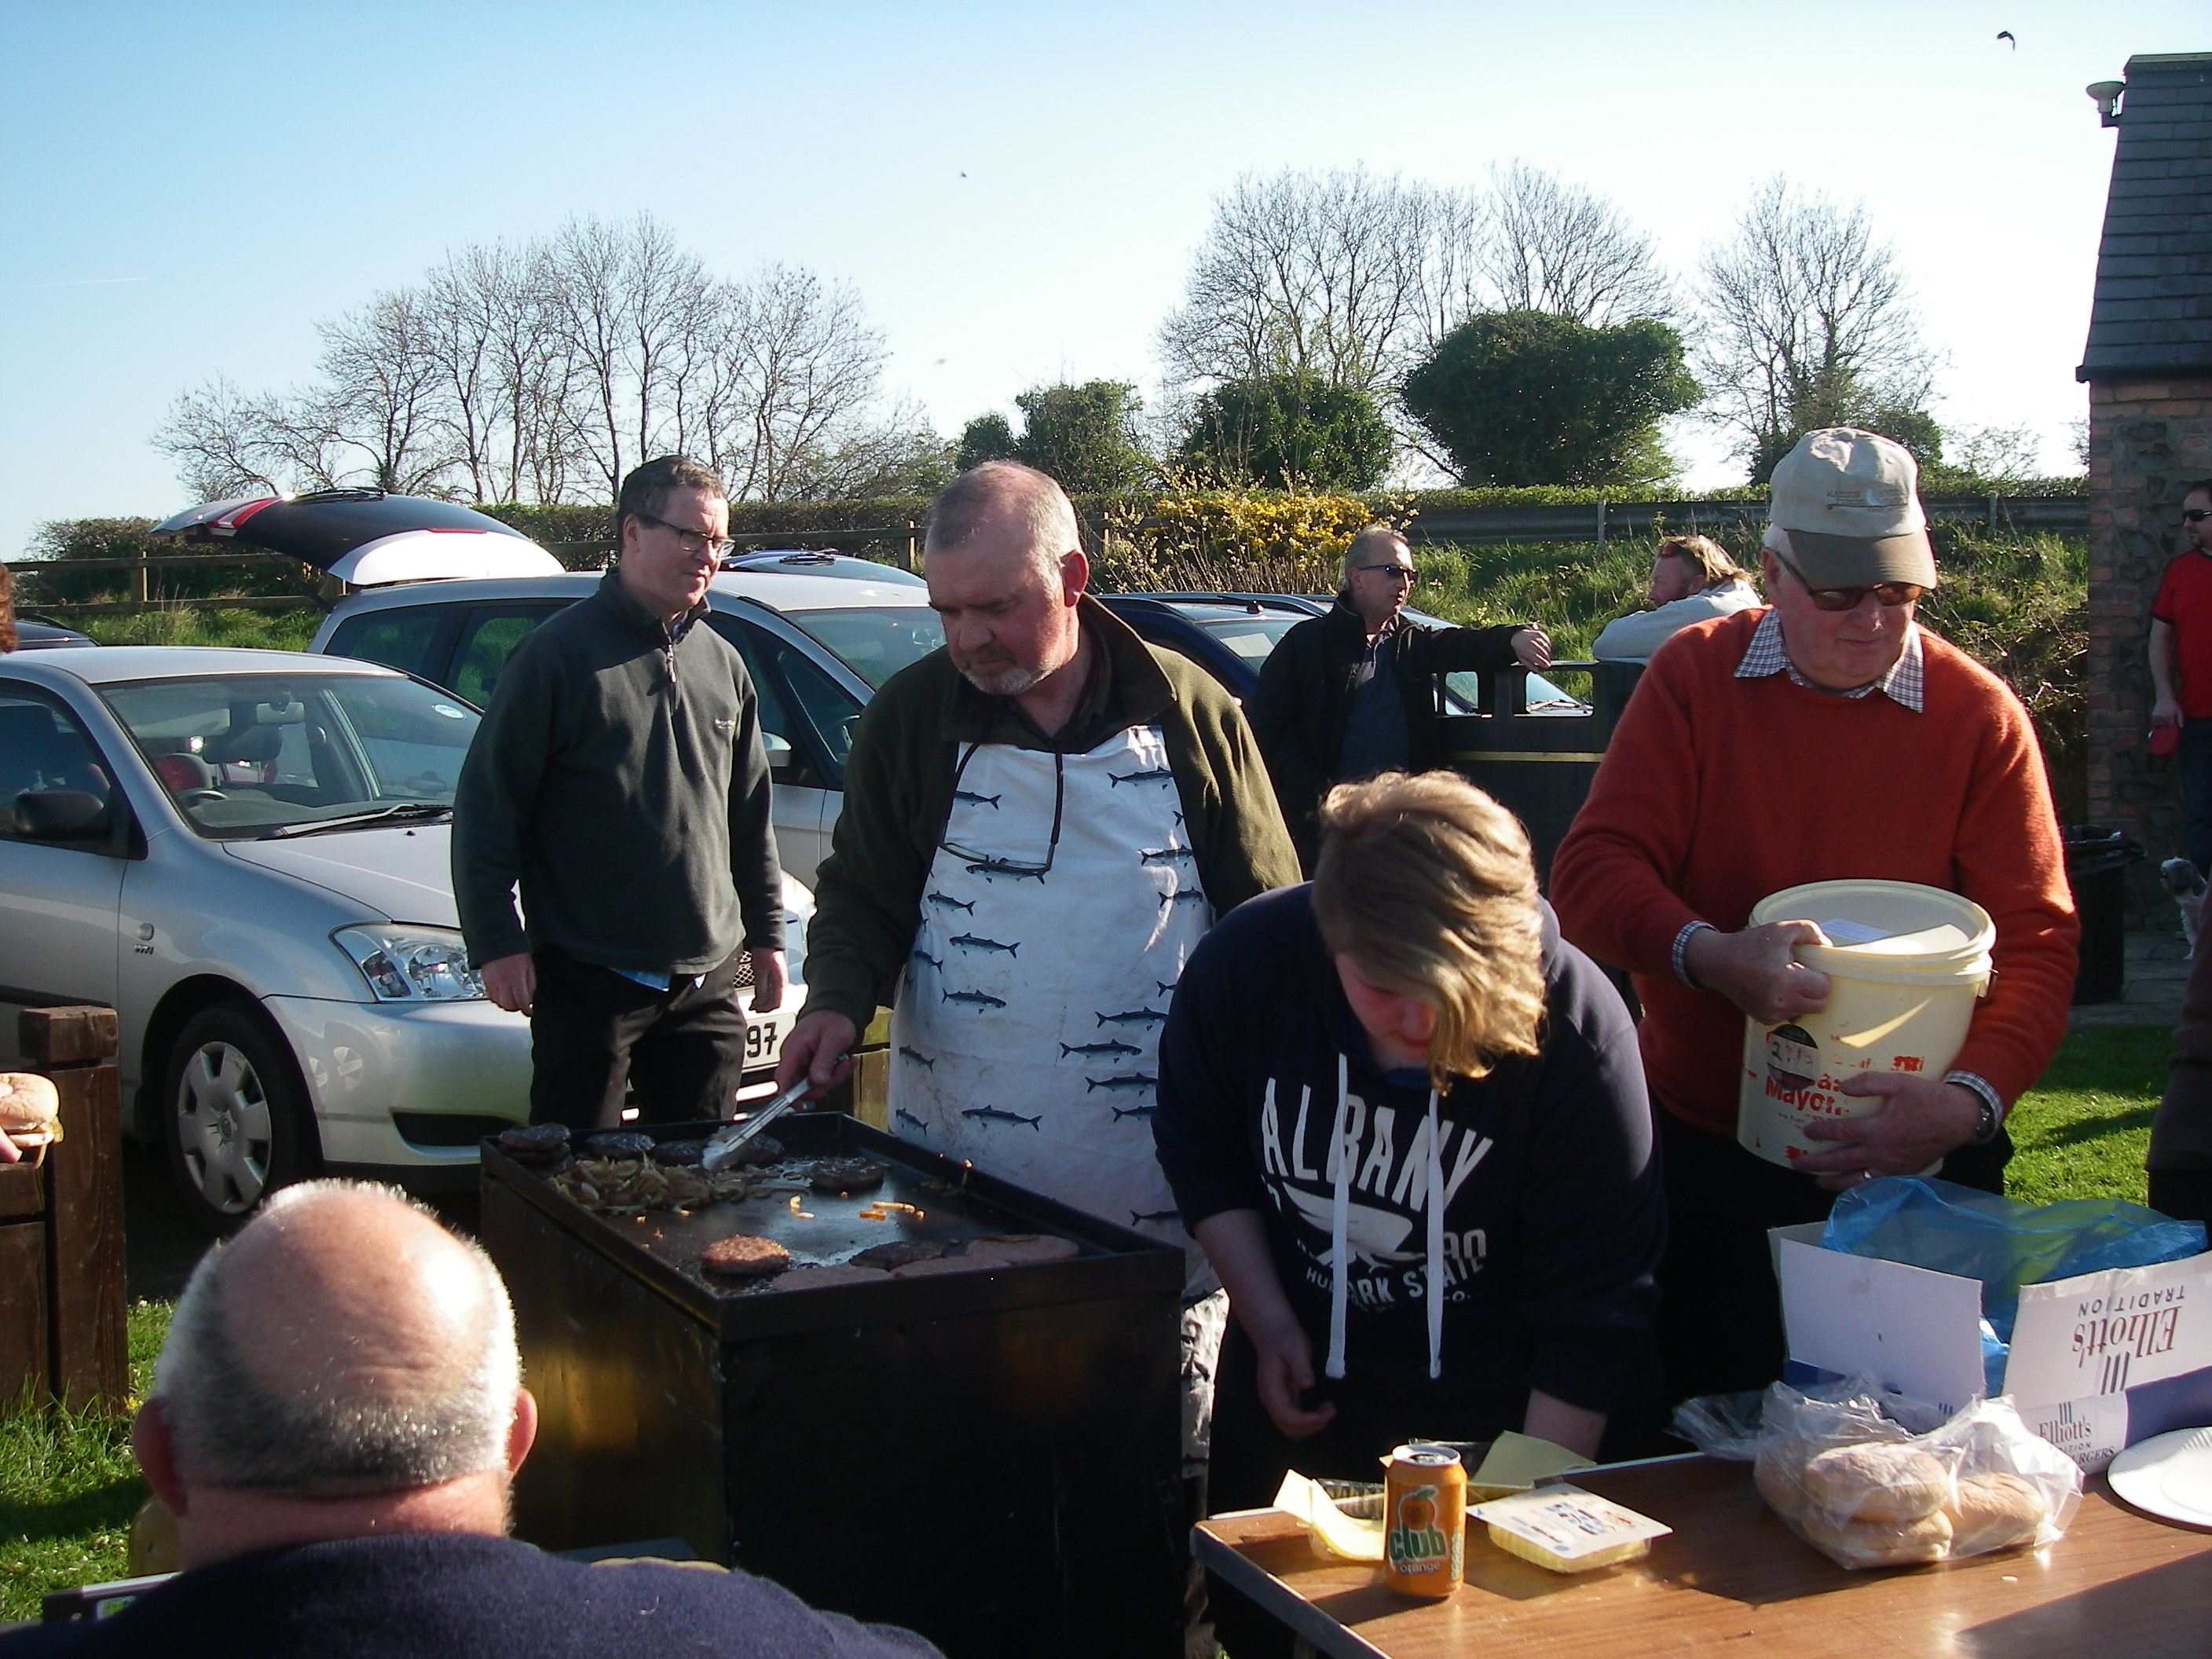 BAC Friendship Cup Corbet Lough 8 April 2017 - Geoff Hylands, Imogen Johnston and Henry McKnight looking after the BBQ